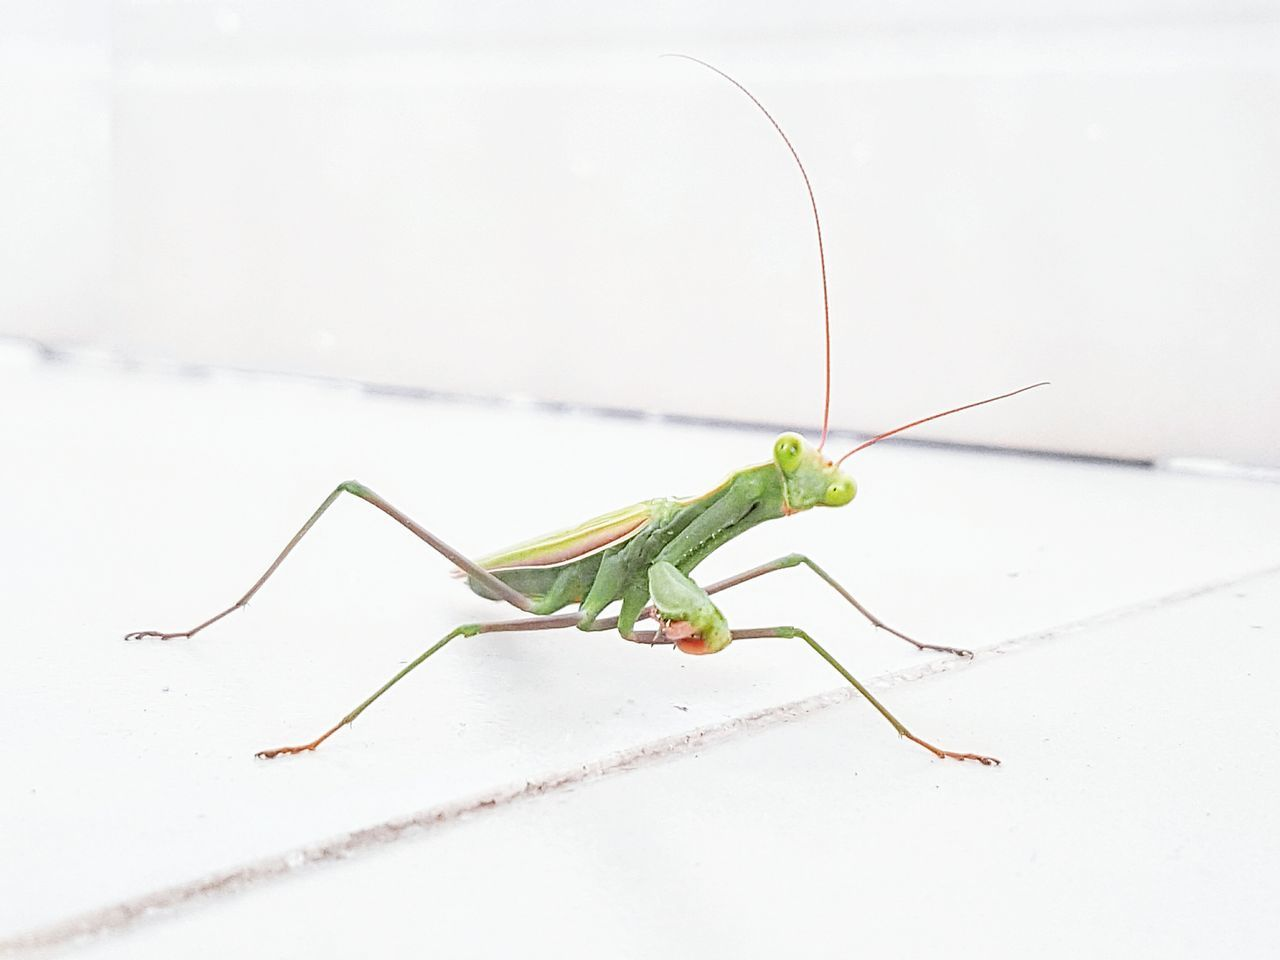 Preymantis Greenbug Green Bug Exotic Whitetiles Antenae Insect Wildlife Animal Antenna Praying Mantis Close-up Focus On Foreground Nature